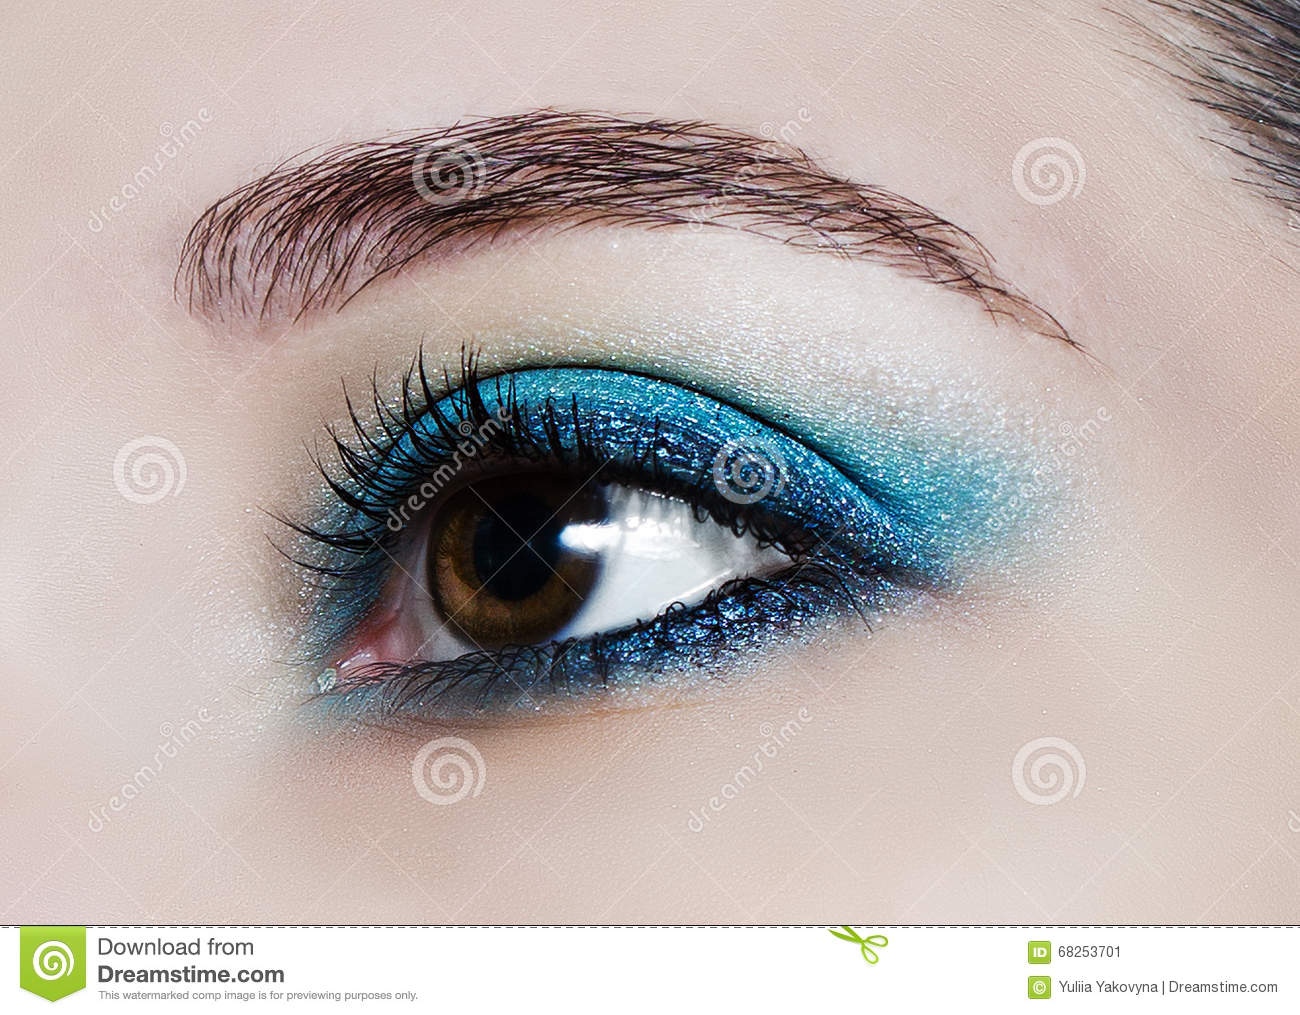 2019 year look- Trend beauty the turquoise eye